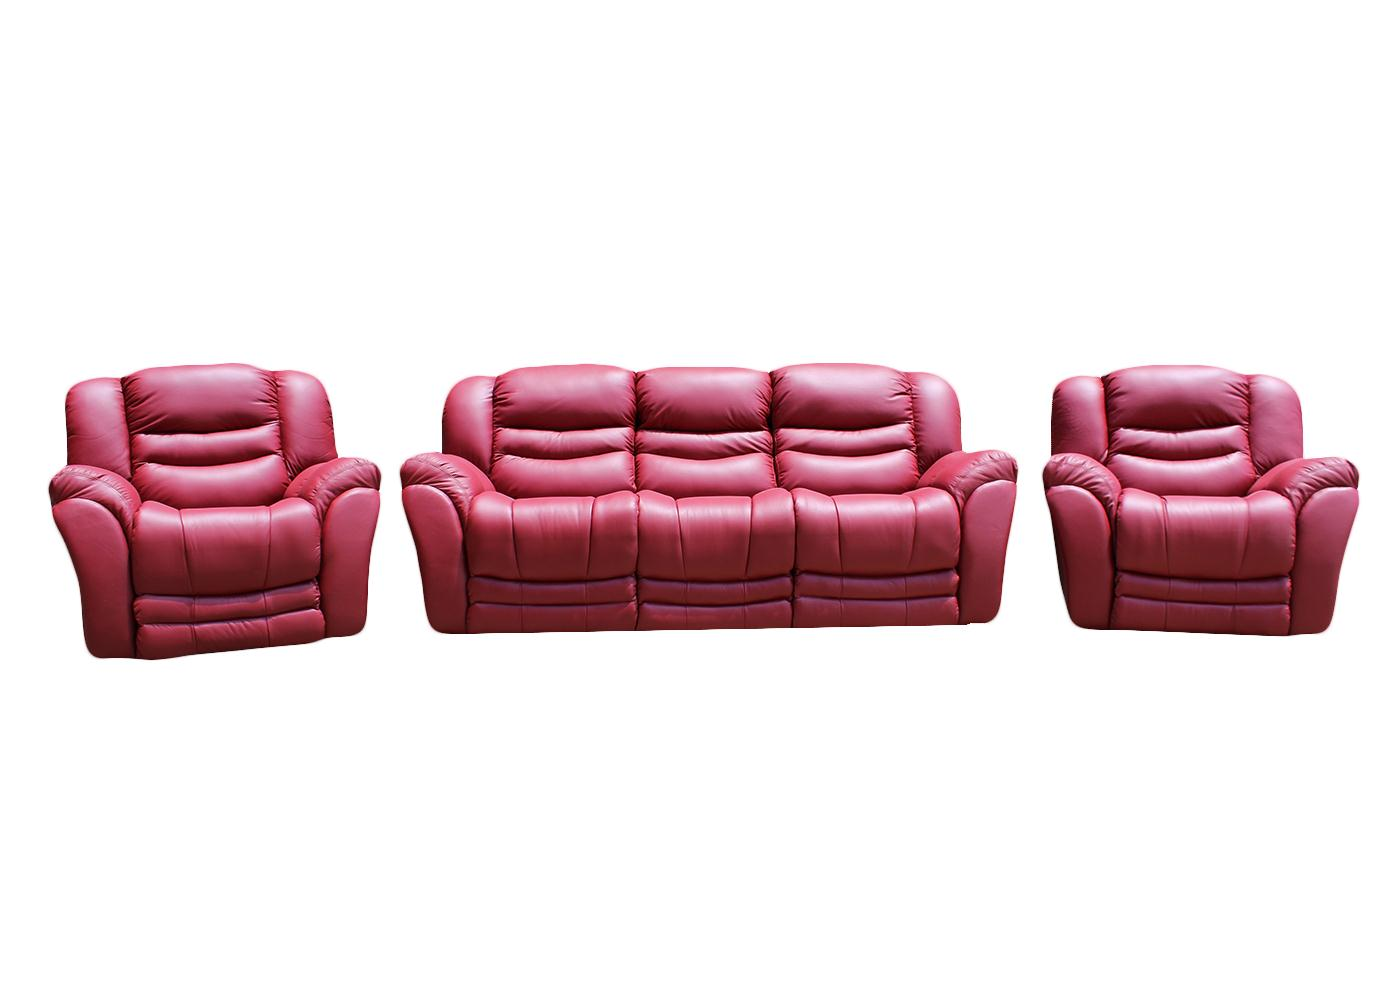 Manhattan 3 Piece Leather Recliner Lounge Suite